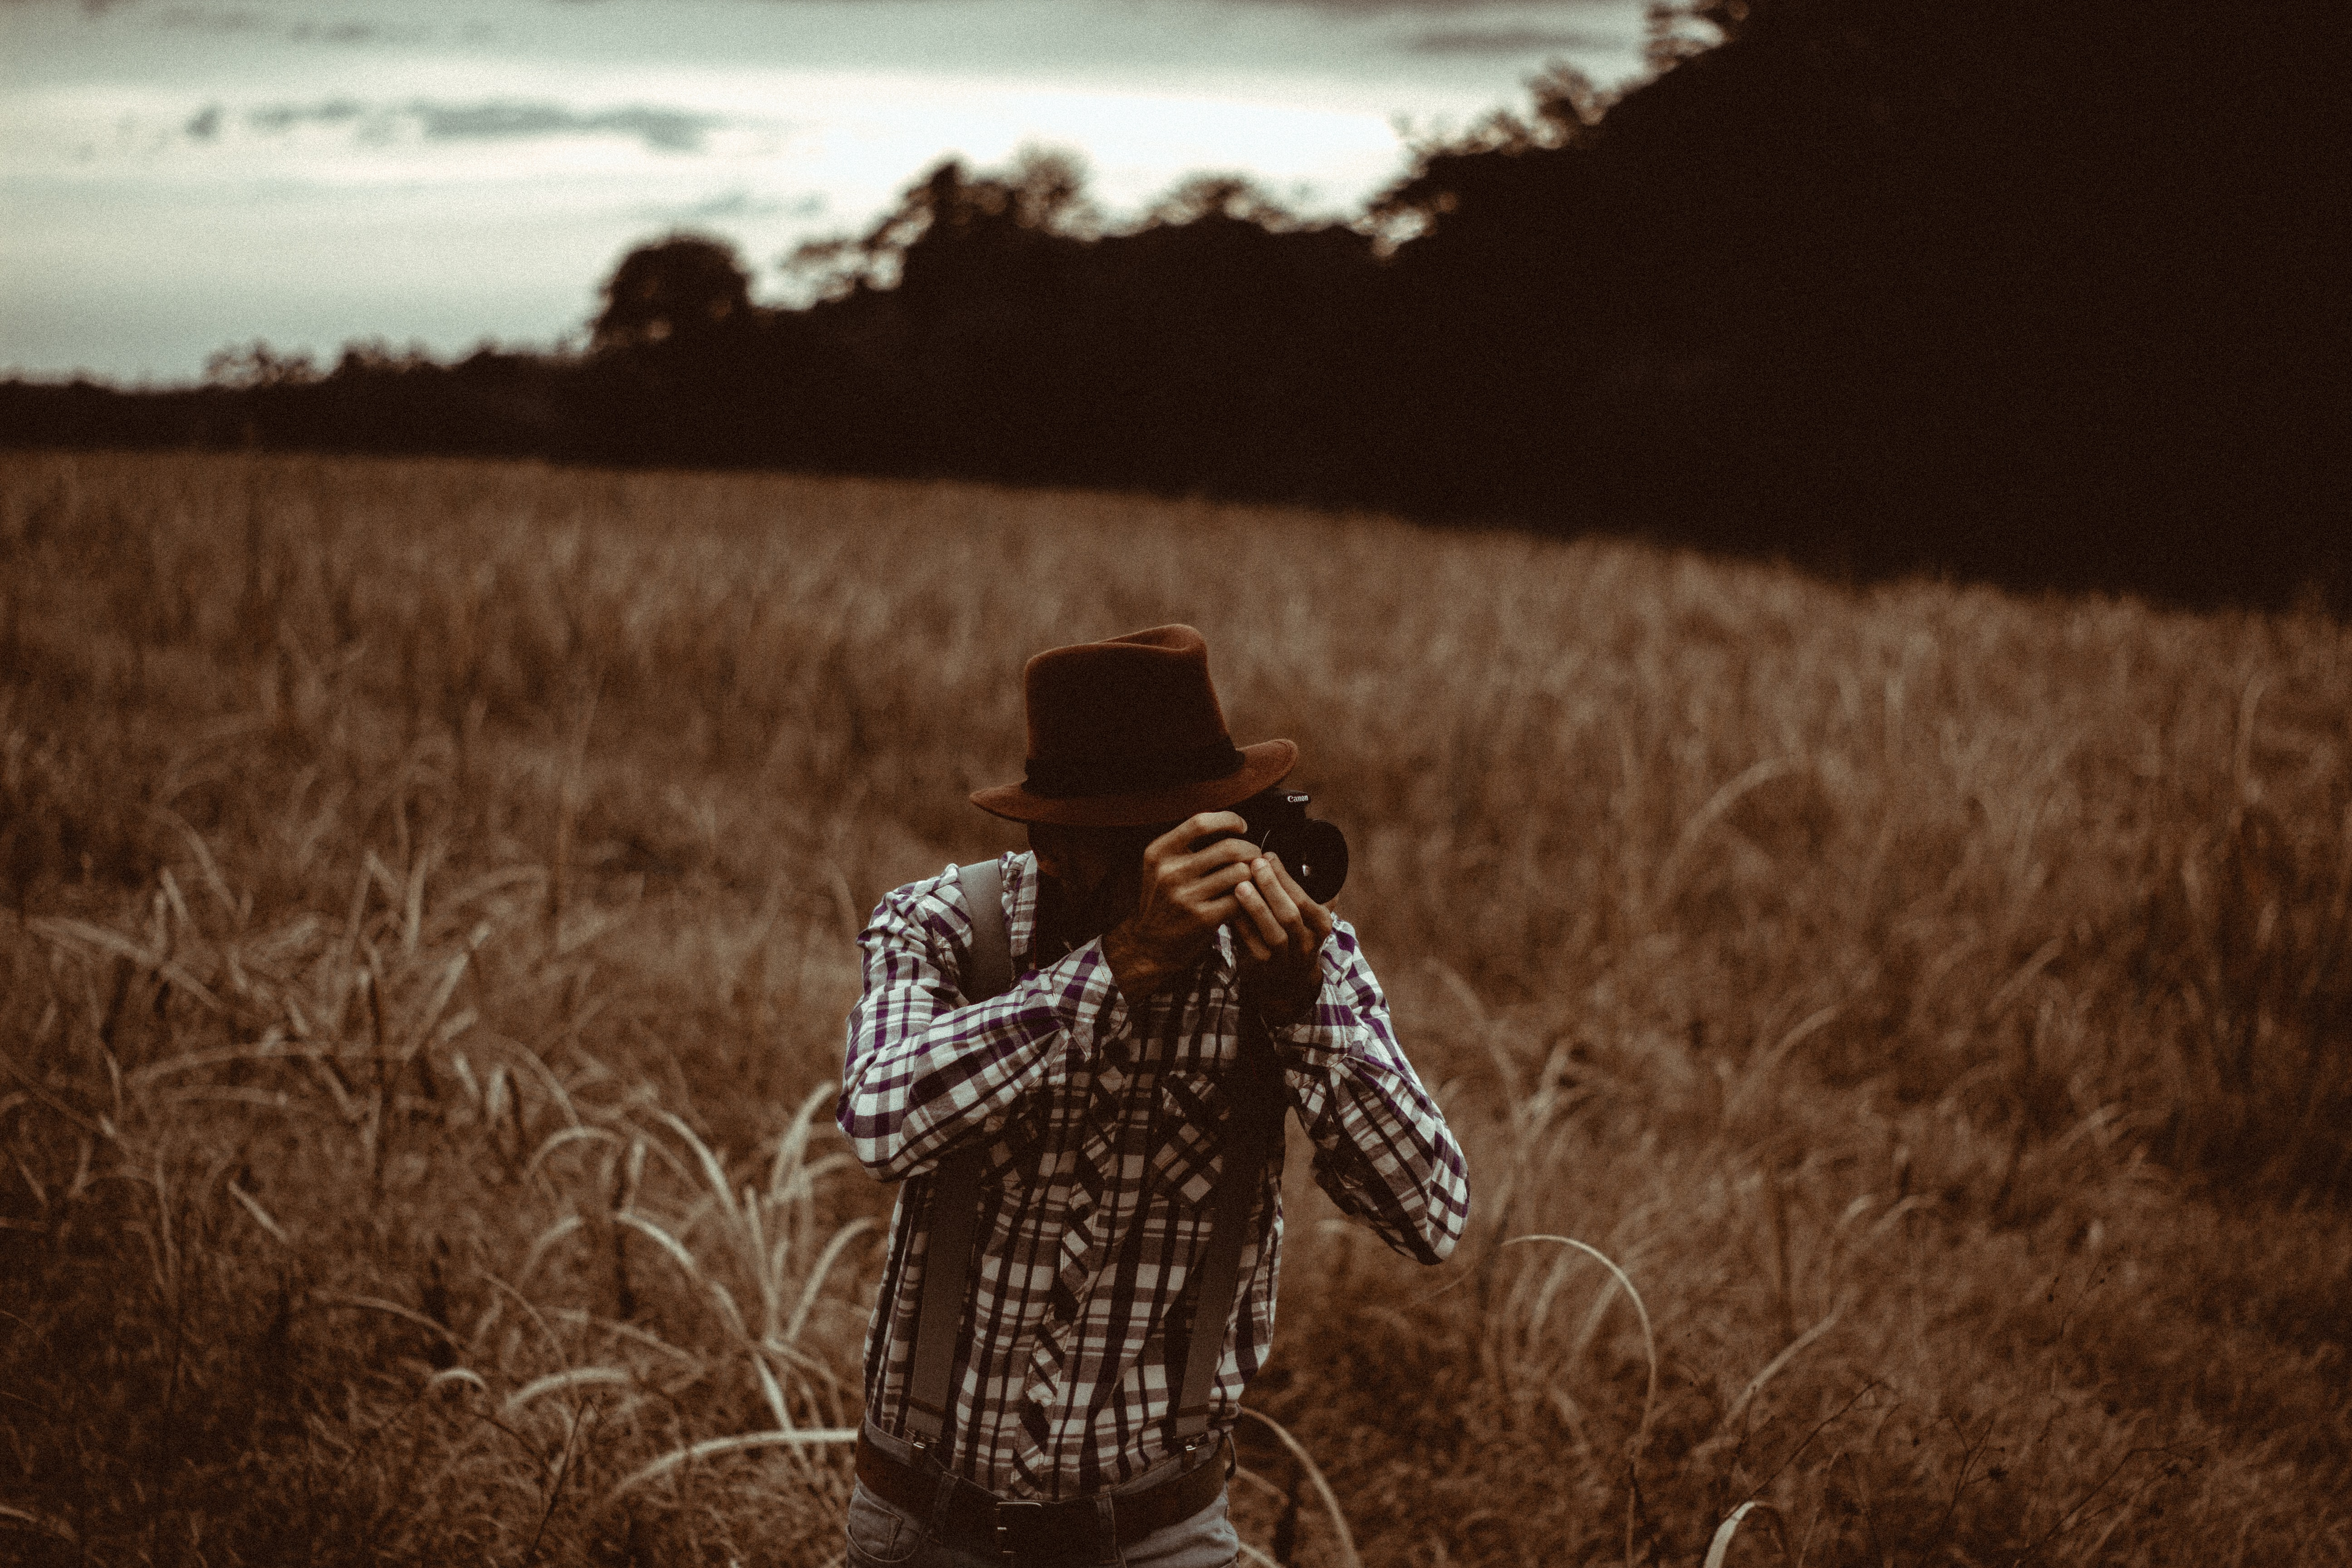 A man in a brown hat and suspenders kneels, taking a photo, in a field